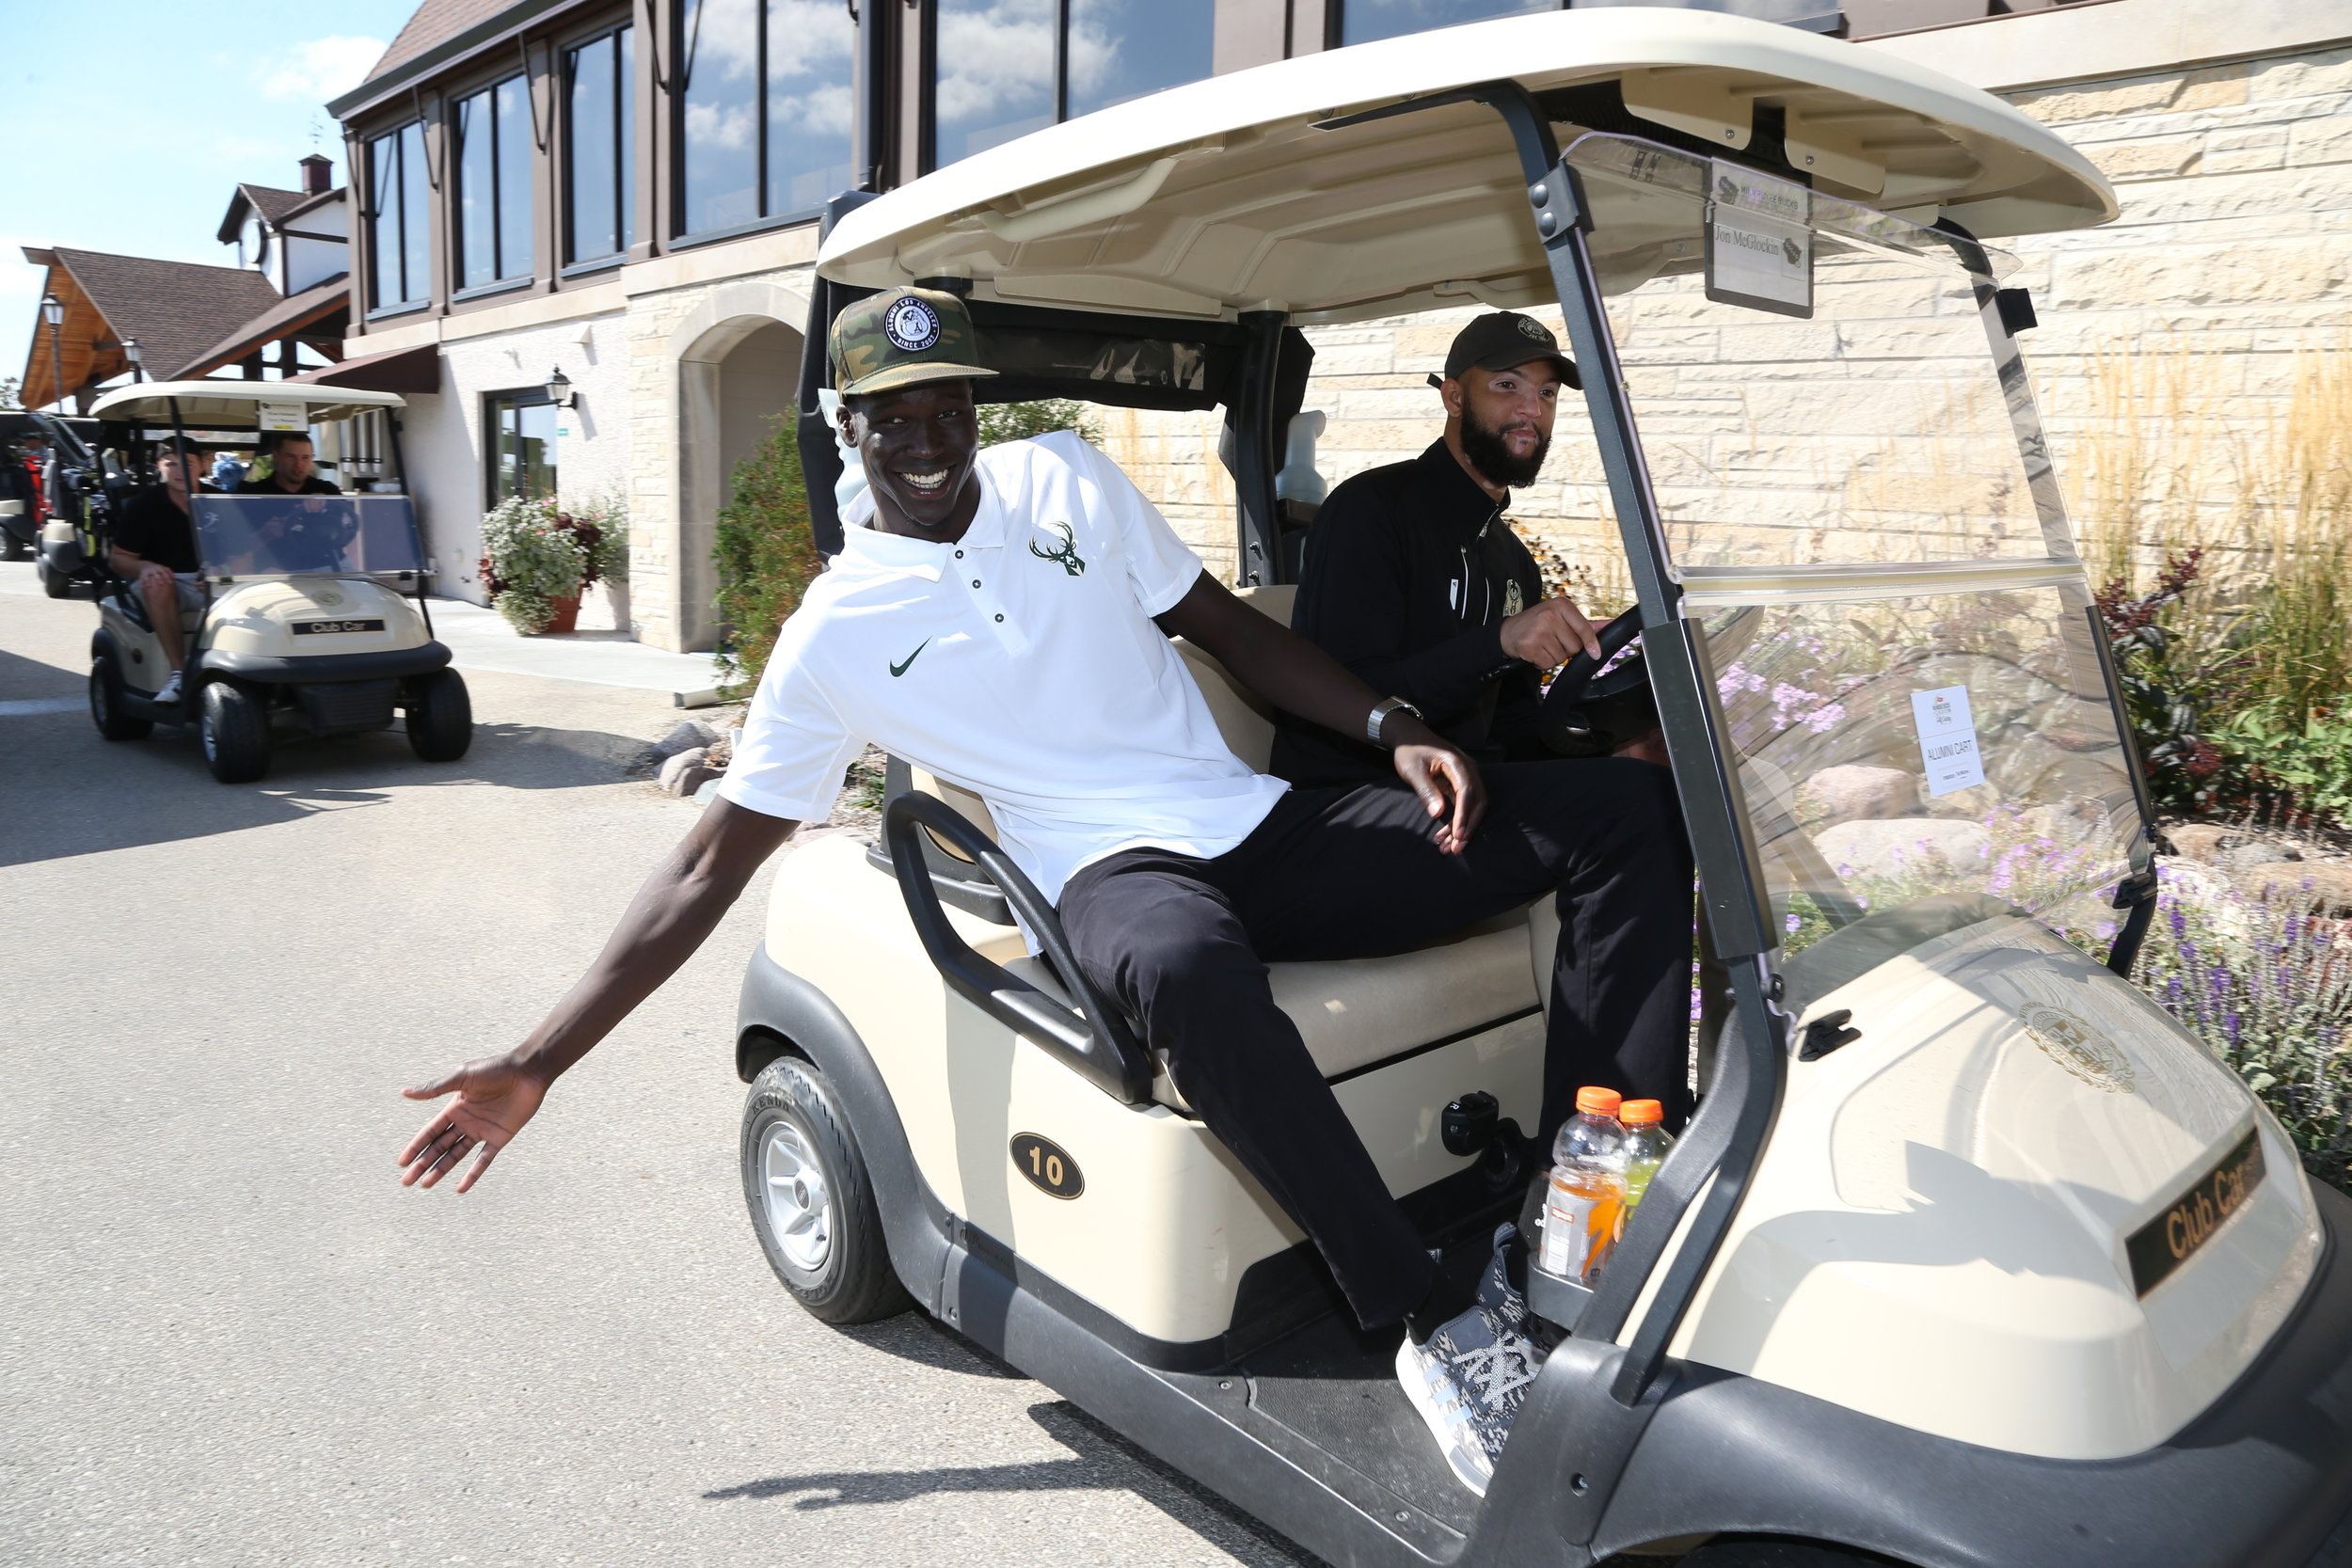 MILWAUKEE BUCKS FOUNDATION GOLF OUTING